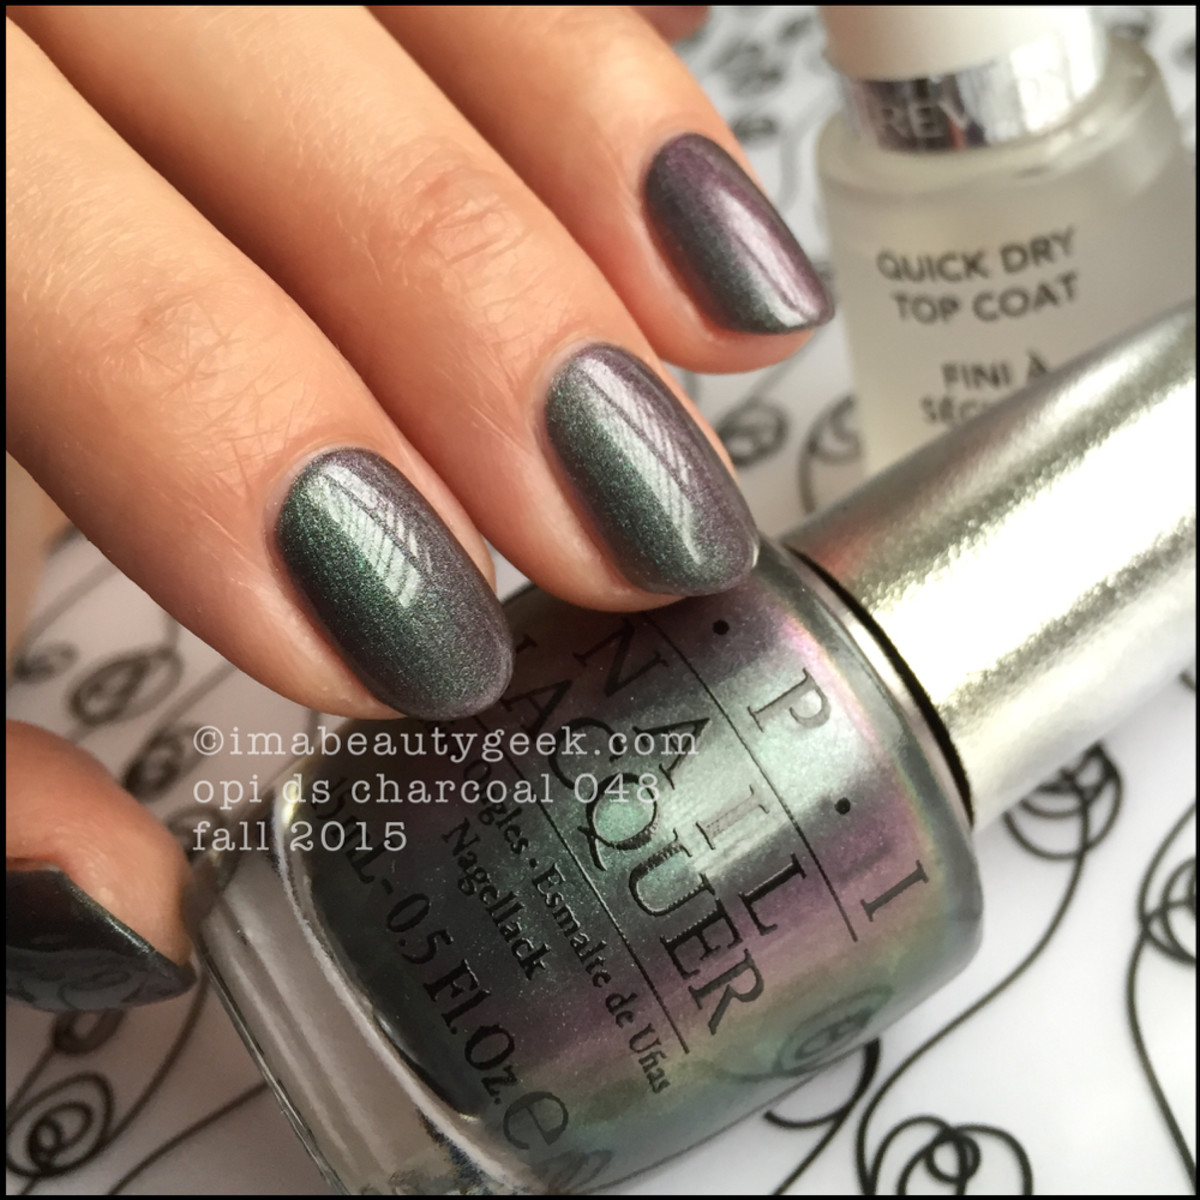 OPI DS 2015 OPI DS Charcoal with top coat_1